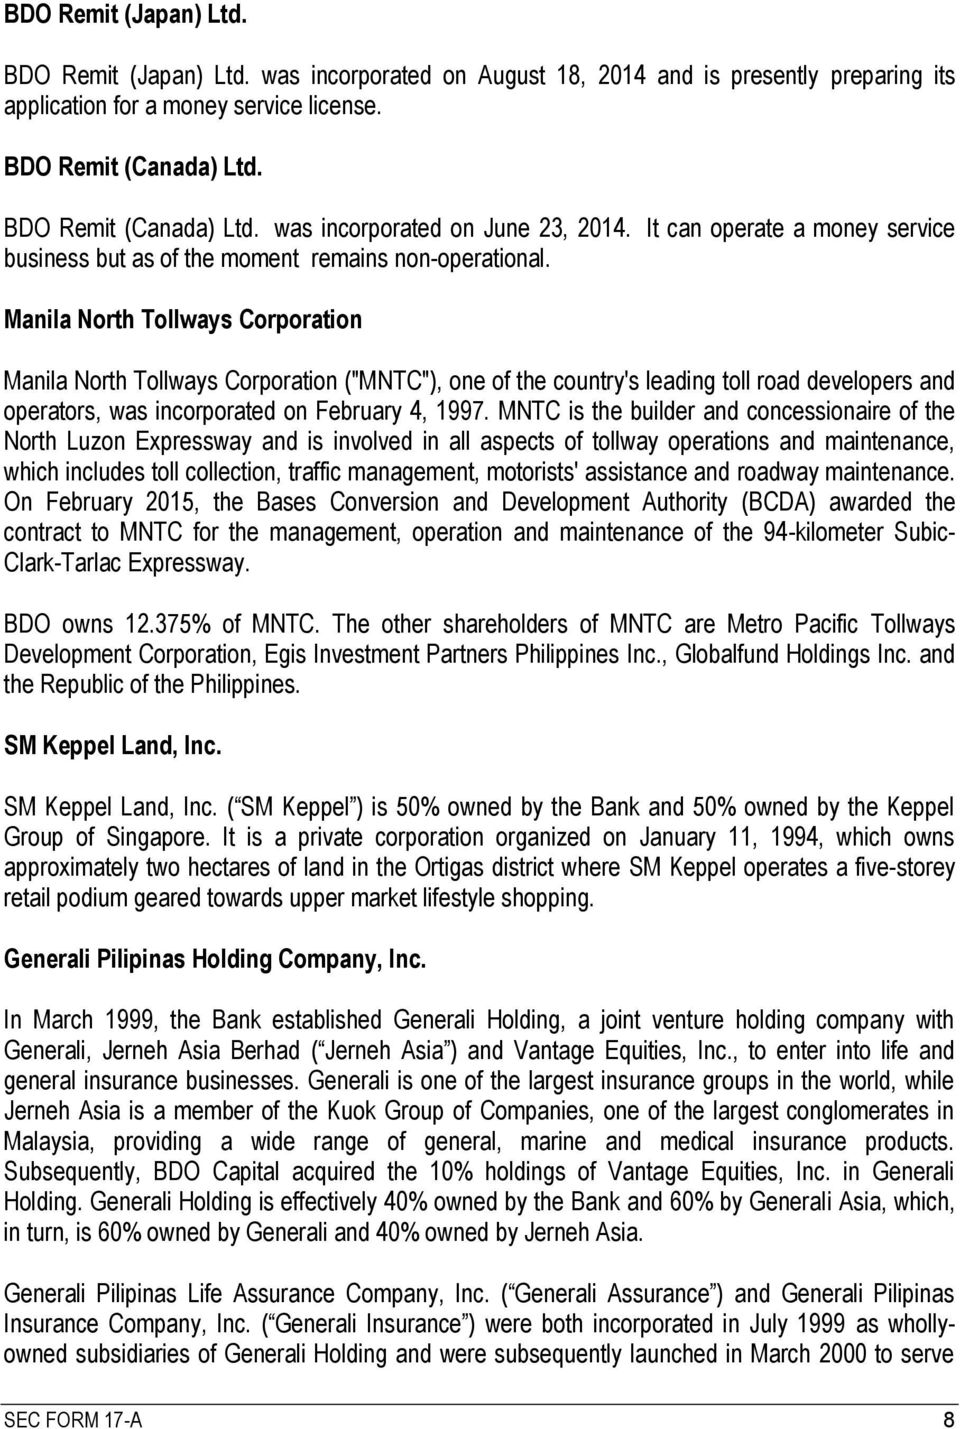 "Manila North Tollways Corporation Manila North Tollways Corporation (""MNTC""), one of the country's leading toll road developers and operators, was incorporated on February 4, 1997."